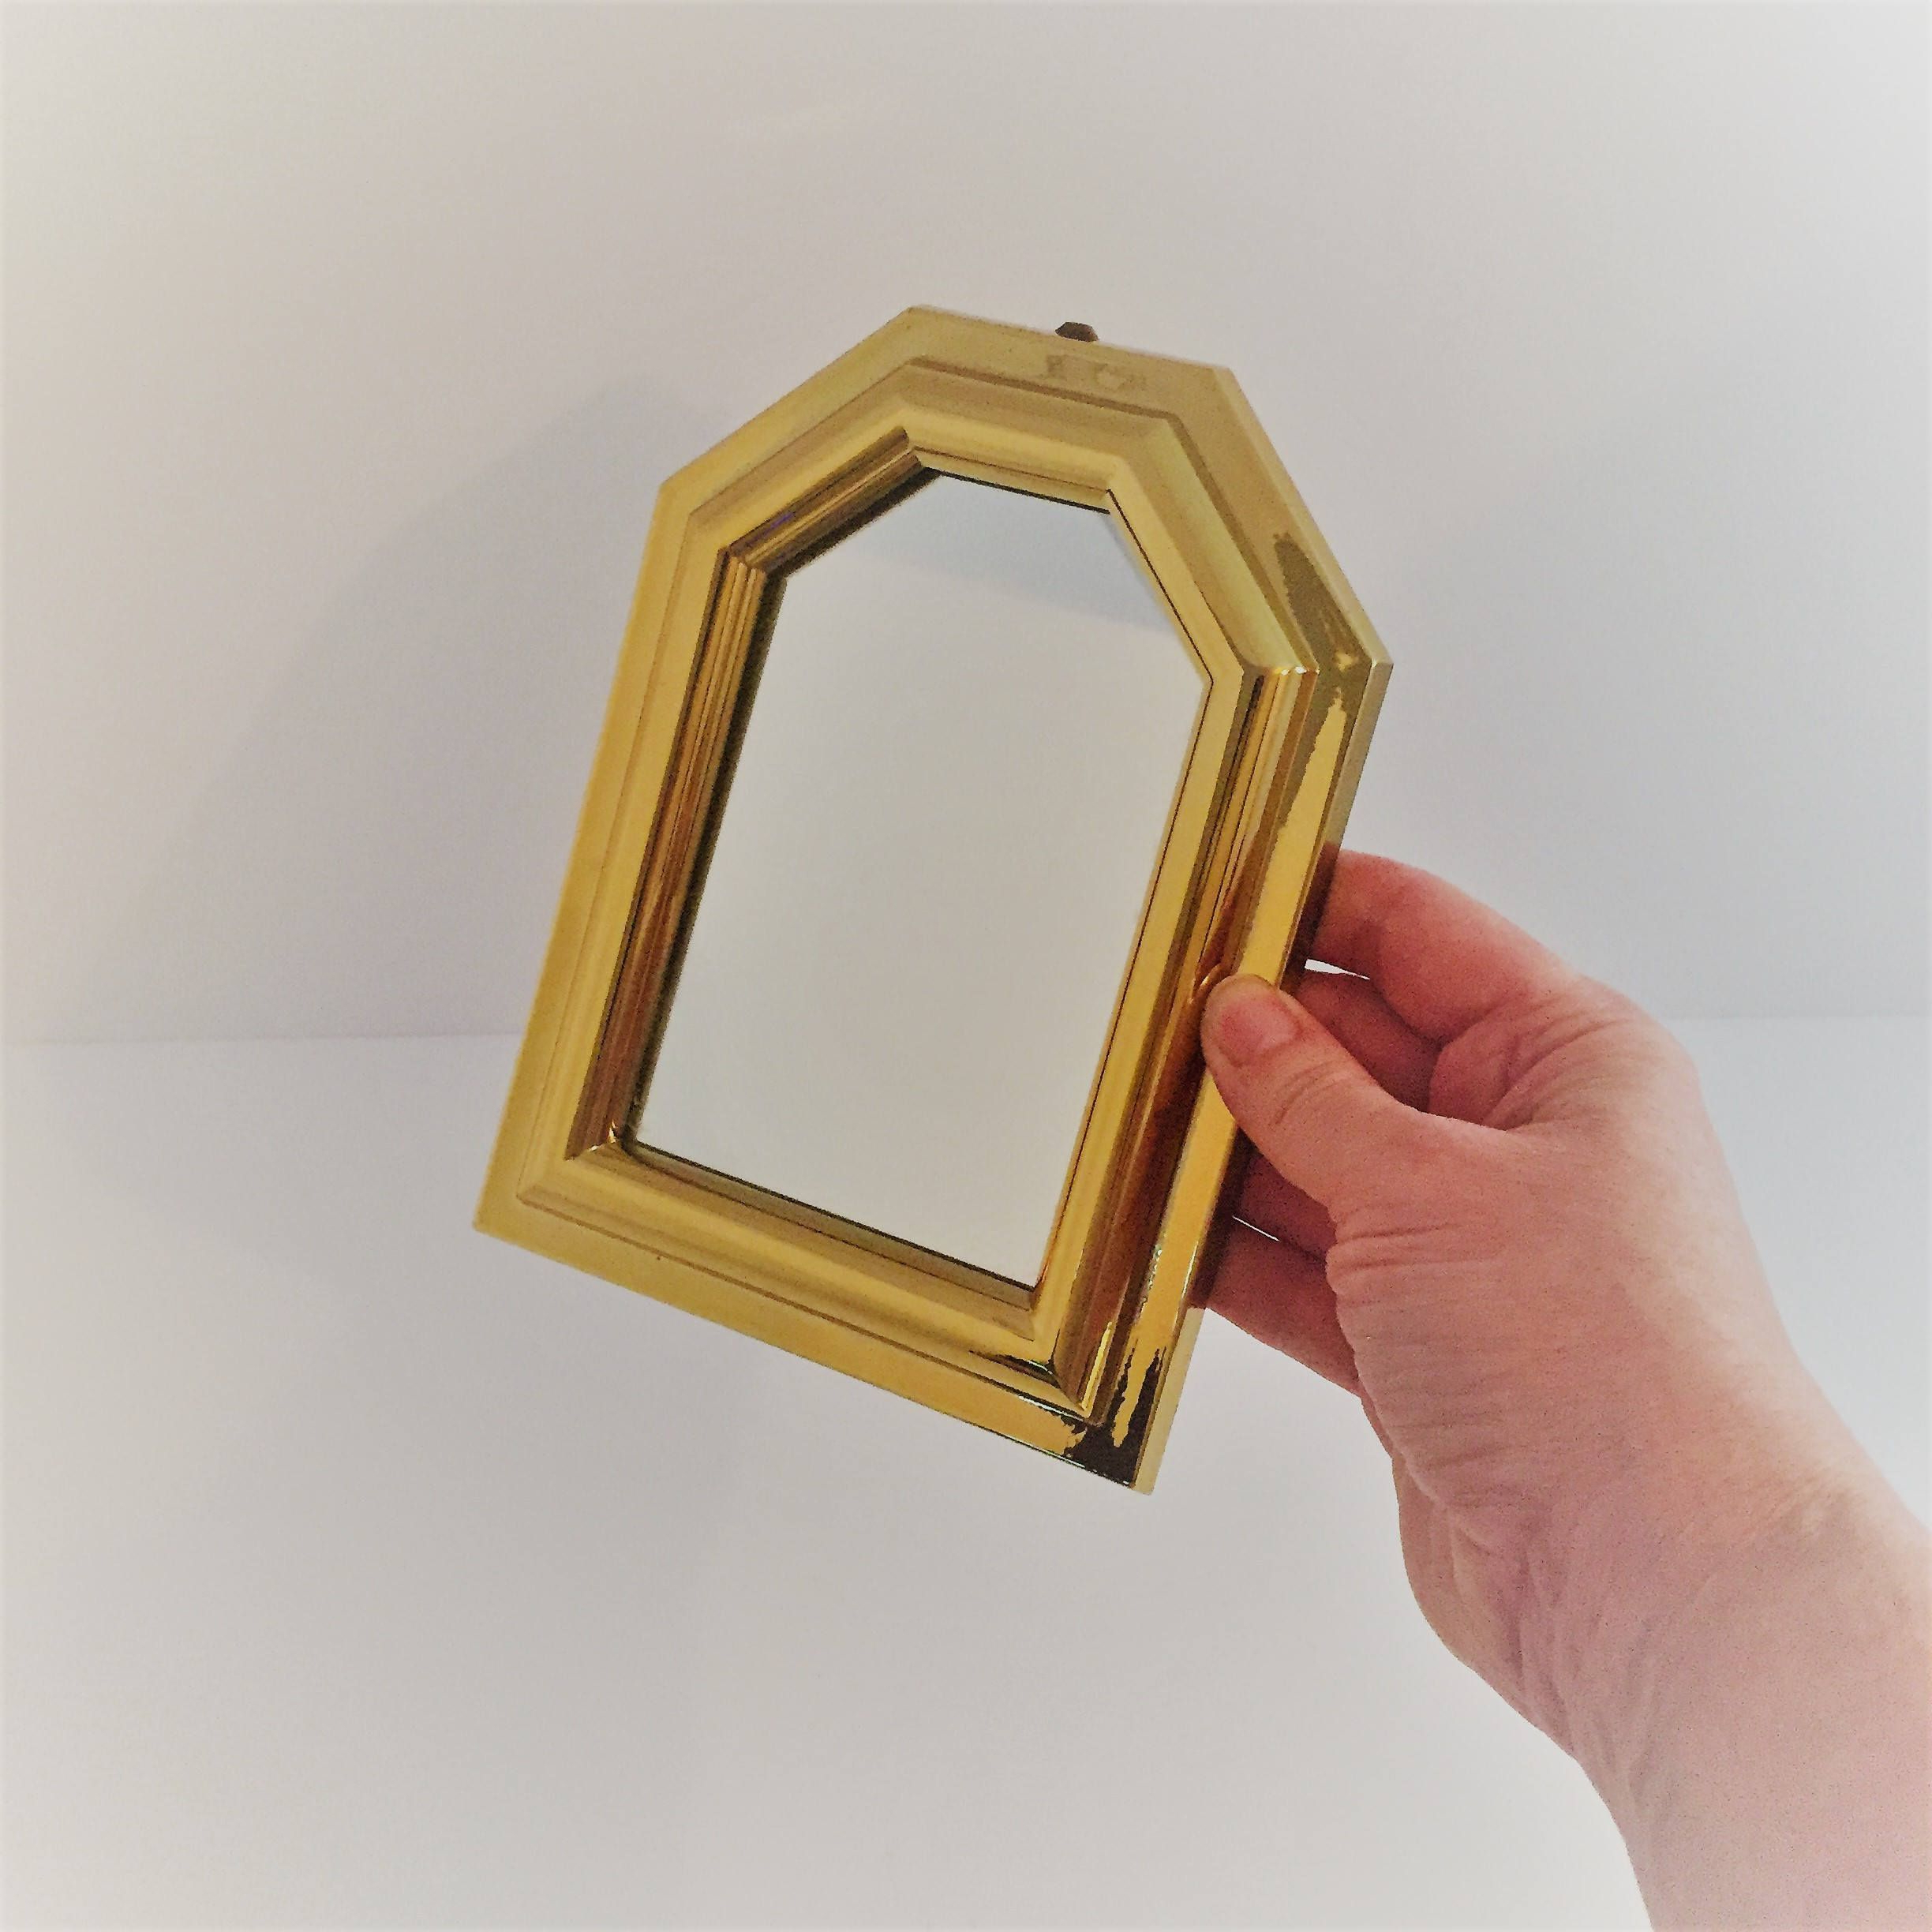 Lightweight Wall Mirrors Intended For Well Known Vintage Gold Mirror Decorative Gold Wall Mirror Lightweight Hanging (View 8 of 20)